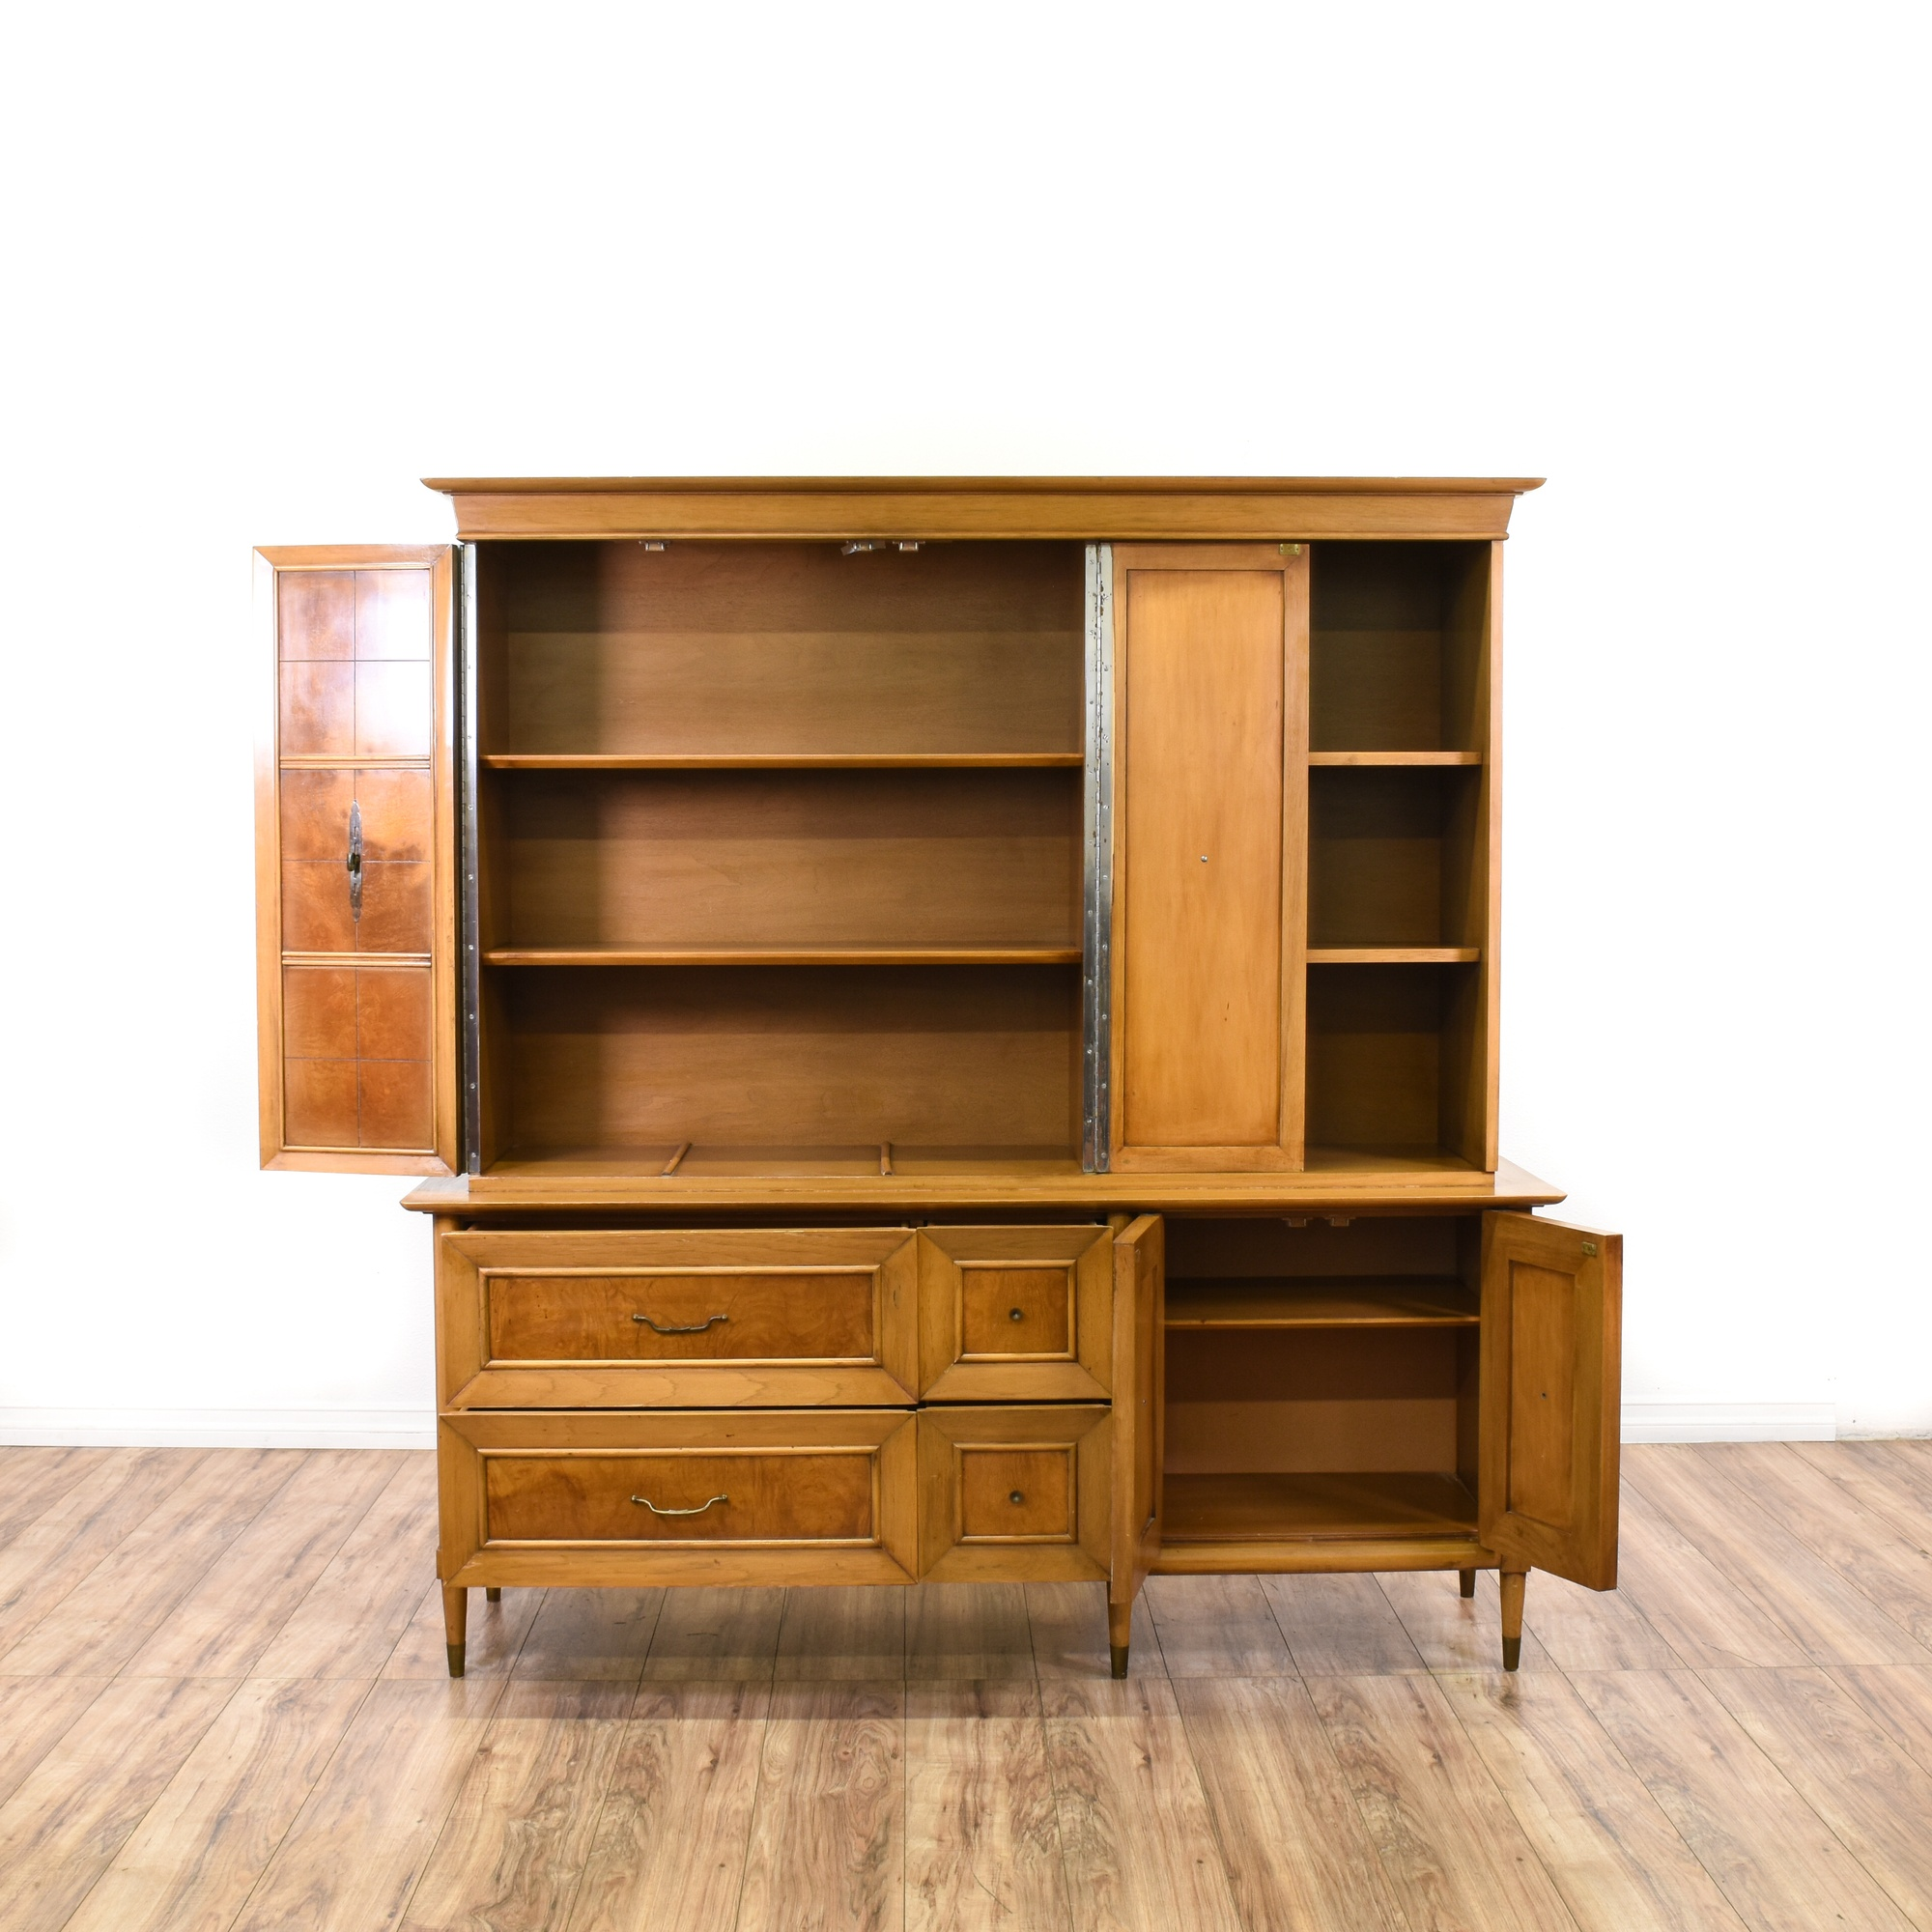 Worth furniture co mid century modern cabinet for Mid century furniture san francisco